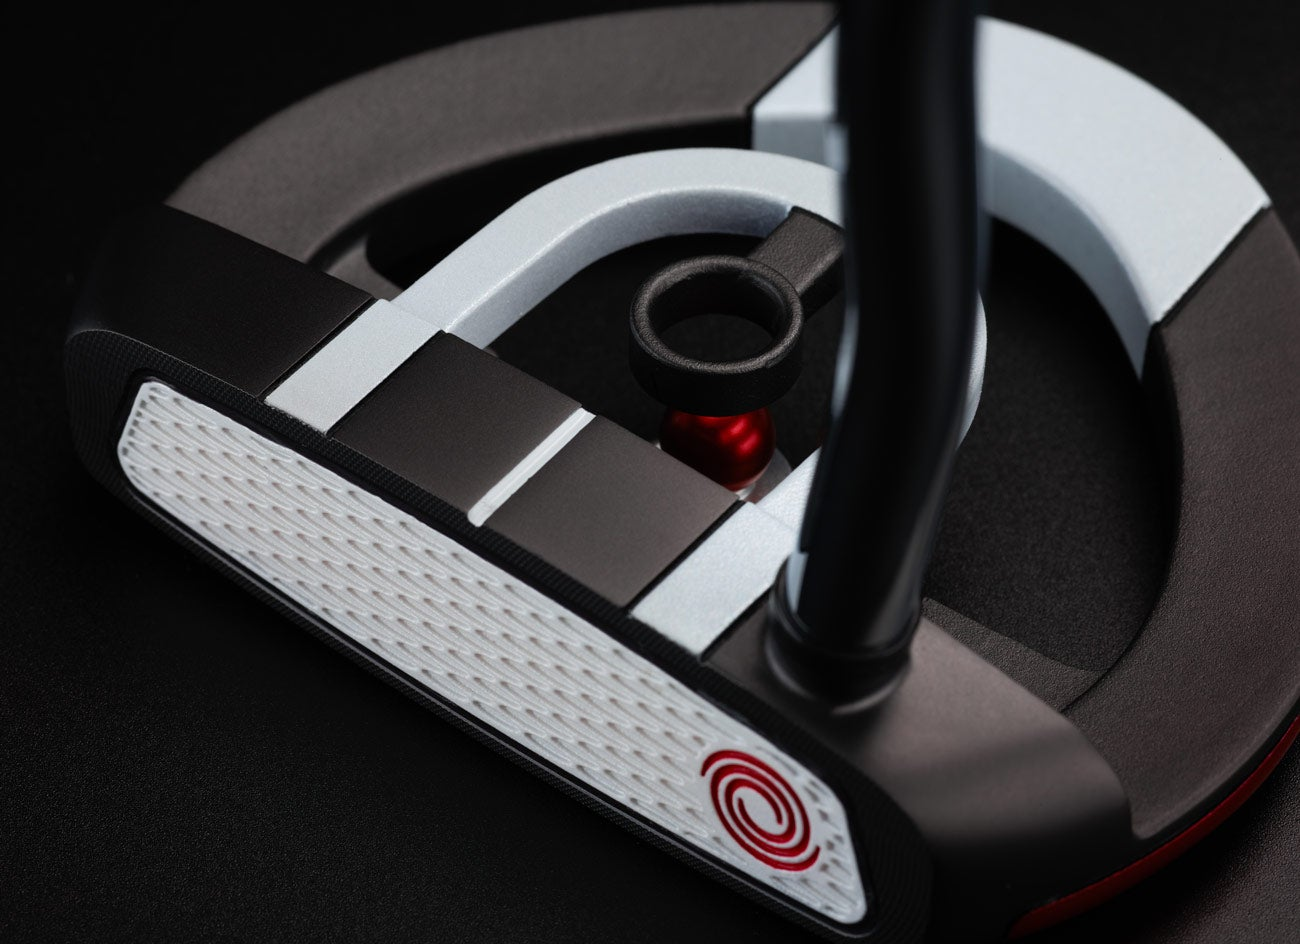 The Odyssey Red Ball putter